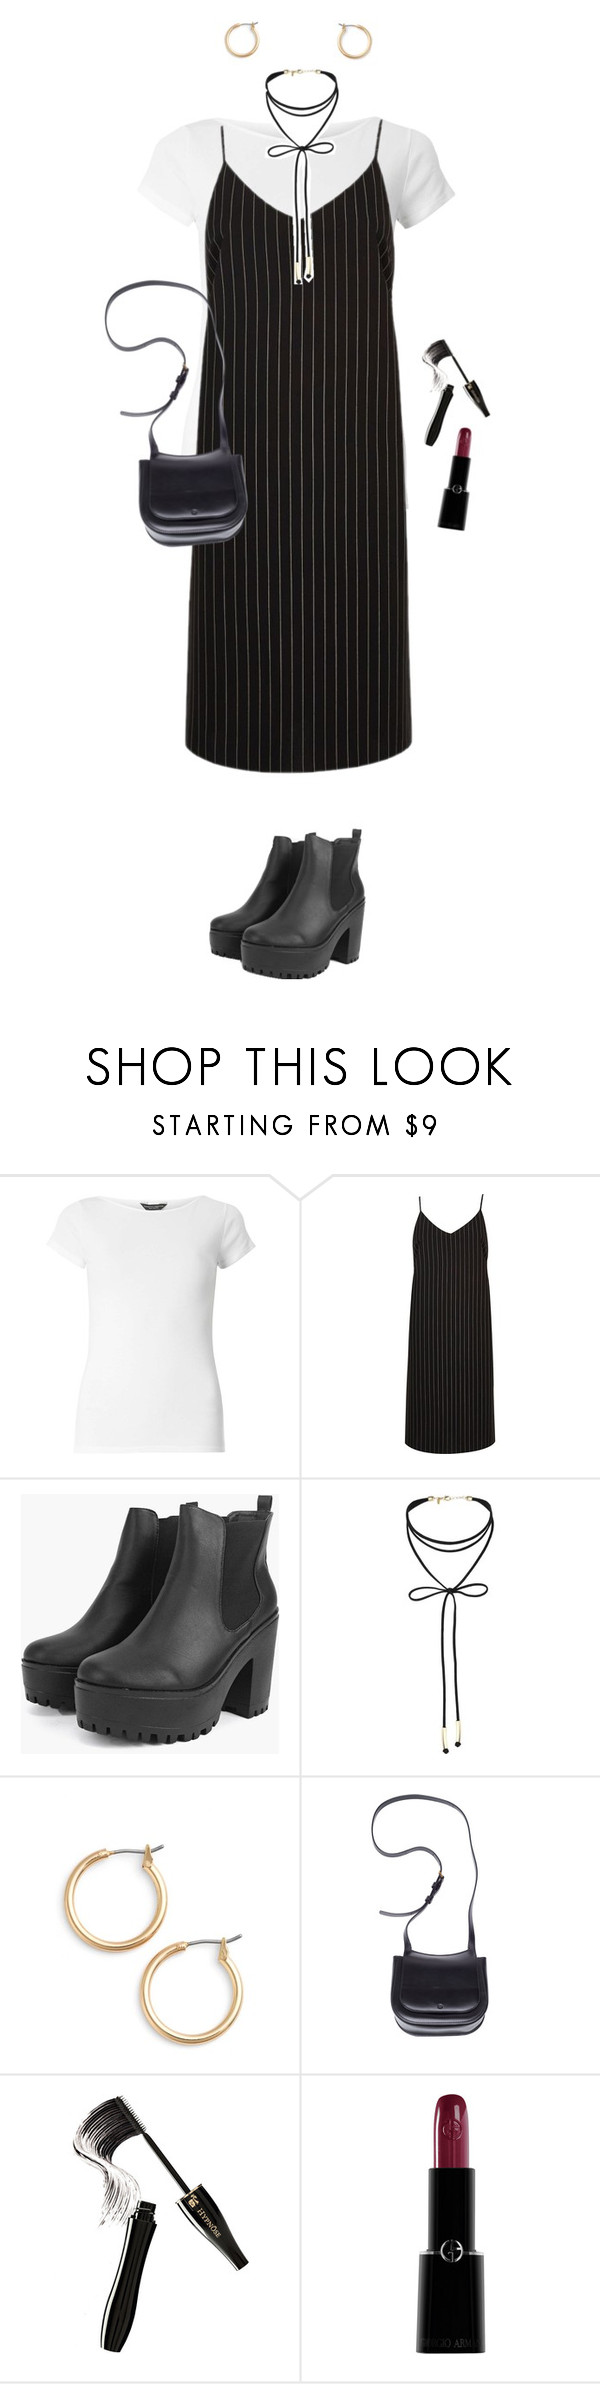 """2"" by rosexdagger ❤ liked on Polyvore featuring Dorothy Perkins, River Island, Miss Selfridge, Nordstrom, The Row, Lancôme, Giorgio Armani and grunge"